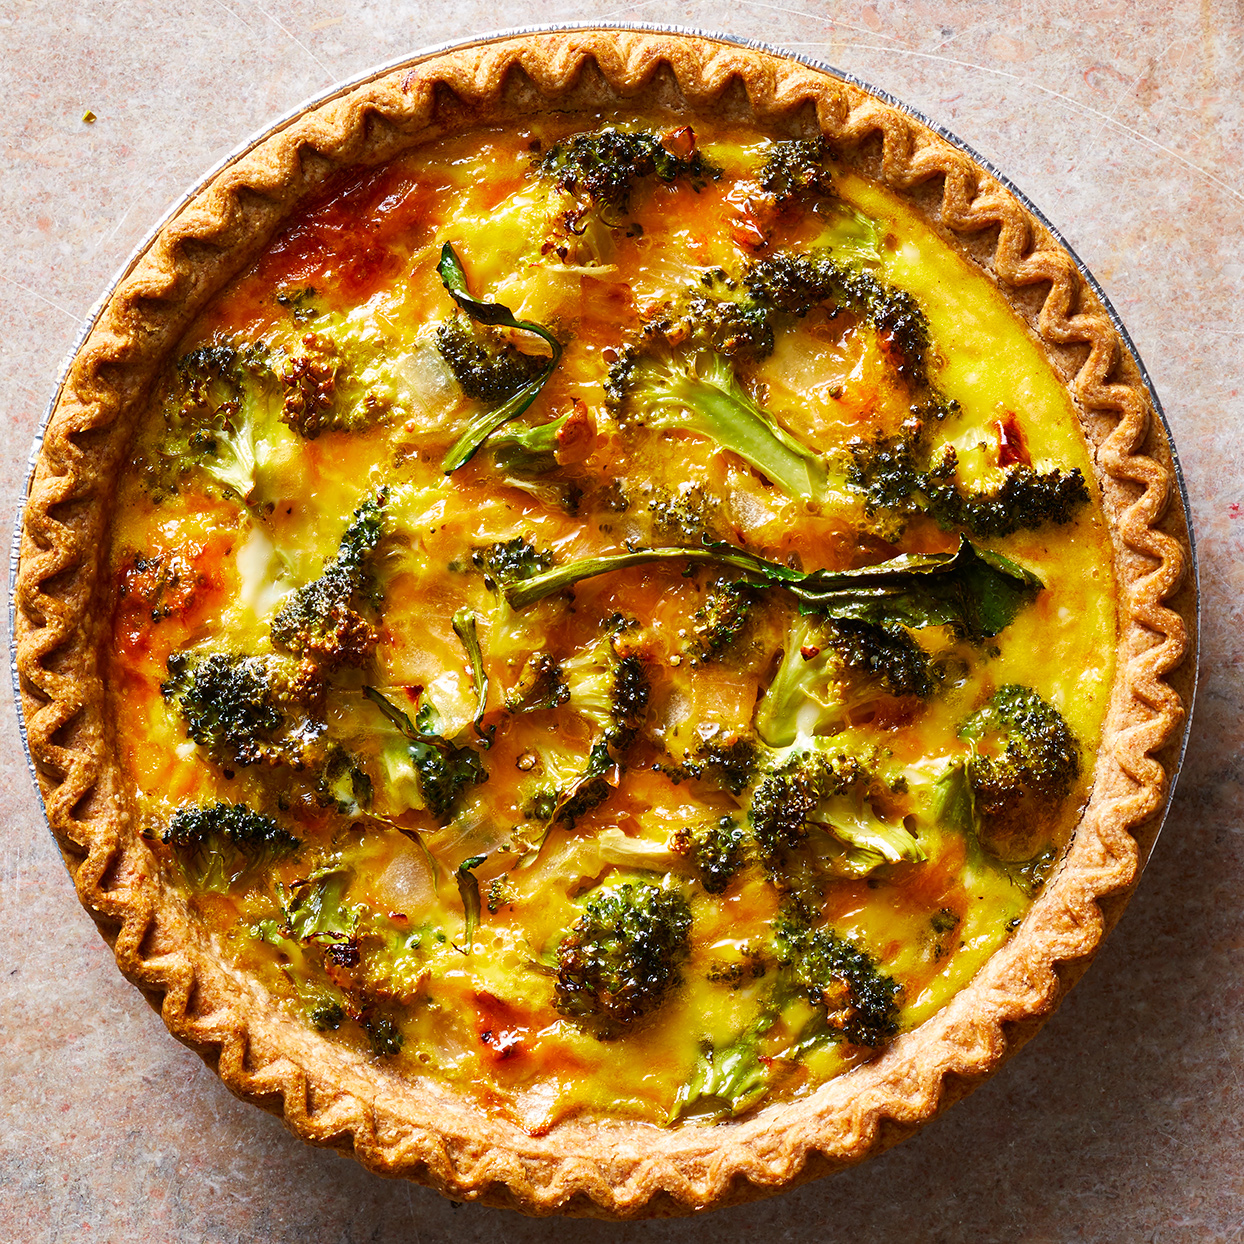 This easy, cheesy broccoli quiche gets its creamy texture from evaporated milk. It's also a great recipe to make ahead: simply reheat before serving or cut into slices and reheat each morning for breakfast. Using pre-cut microwaveable broccoli cuts down on prep time, but if you have broccoli crowns sitting around, go ahead and use those up. Just be sure to cook the broccoli until it's just barely tender or the final dish will have overcooked, soggy broccoli.